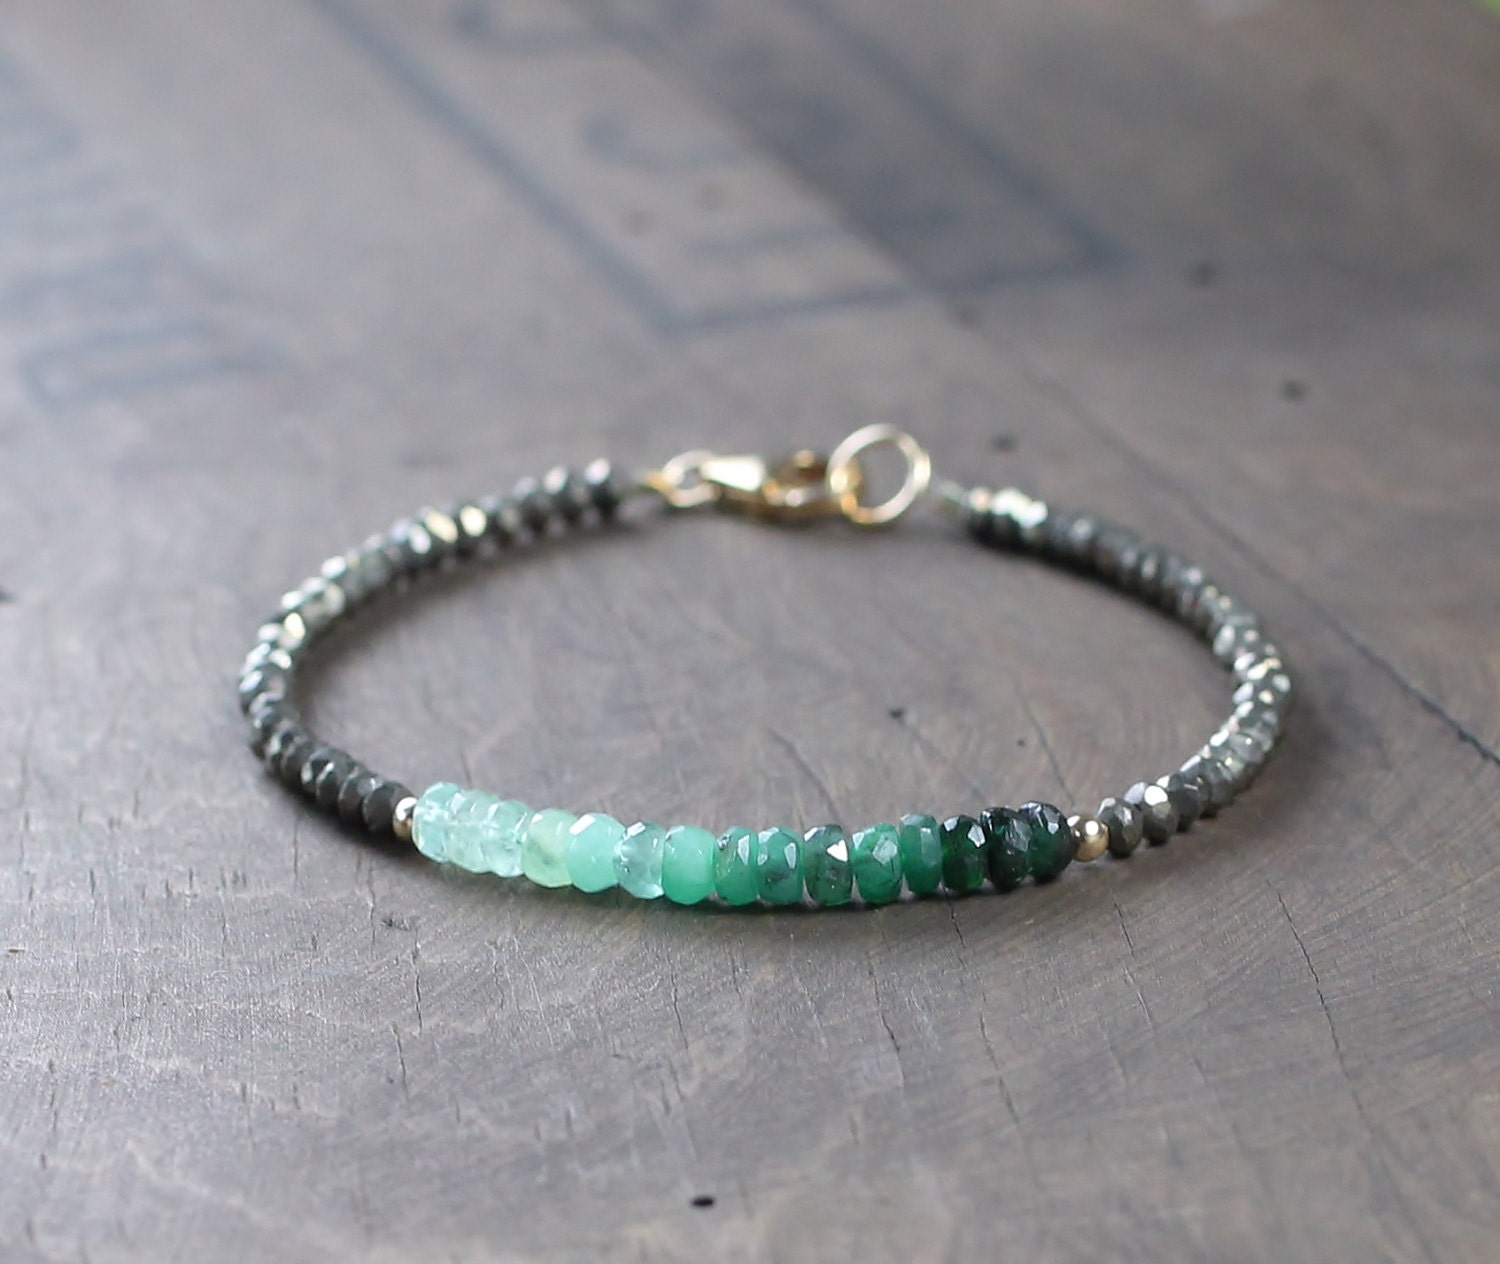 Emerald Bead Beads: Ombre Emerald Gemstone Beaded Bracelet With Pyrite Delicate